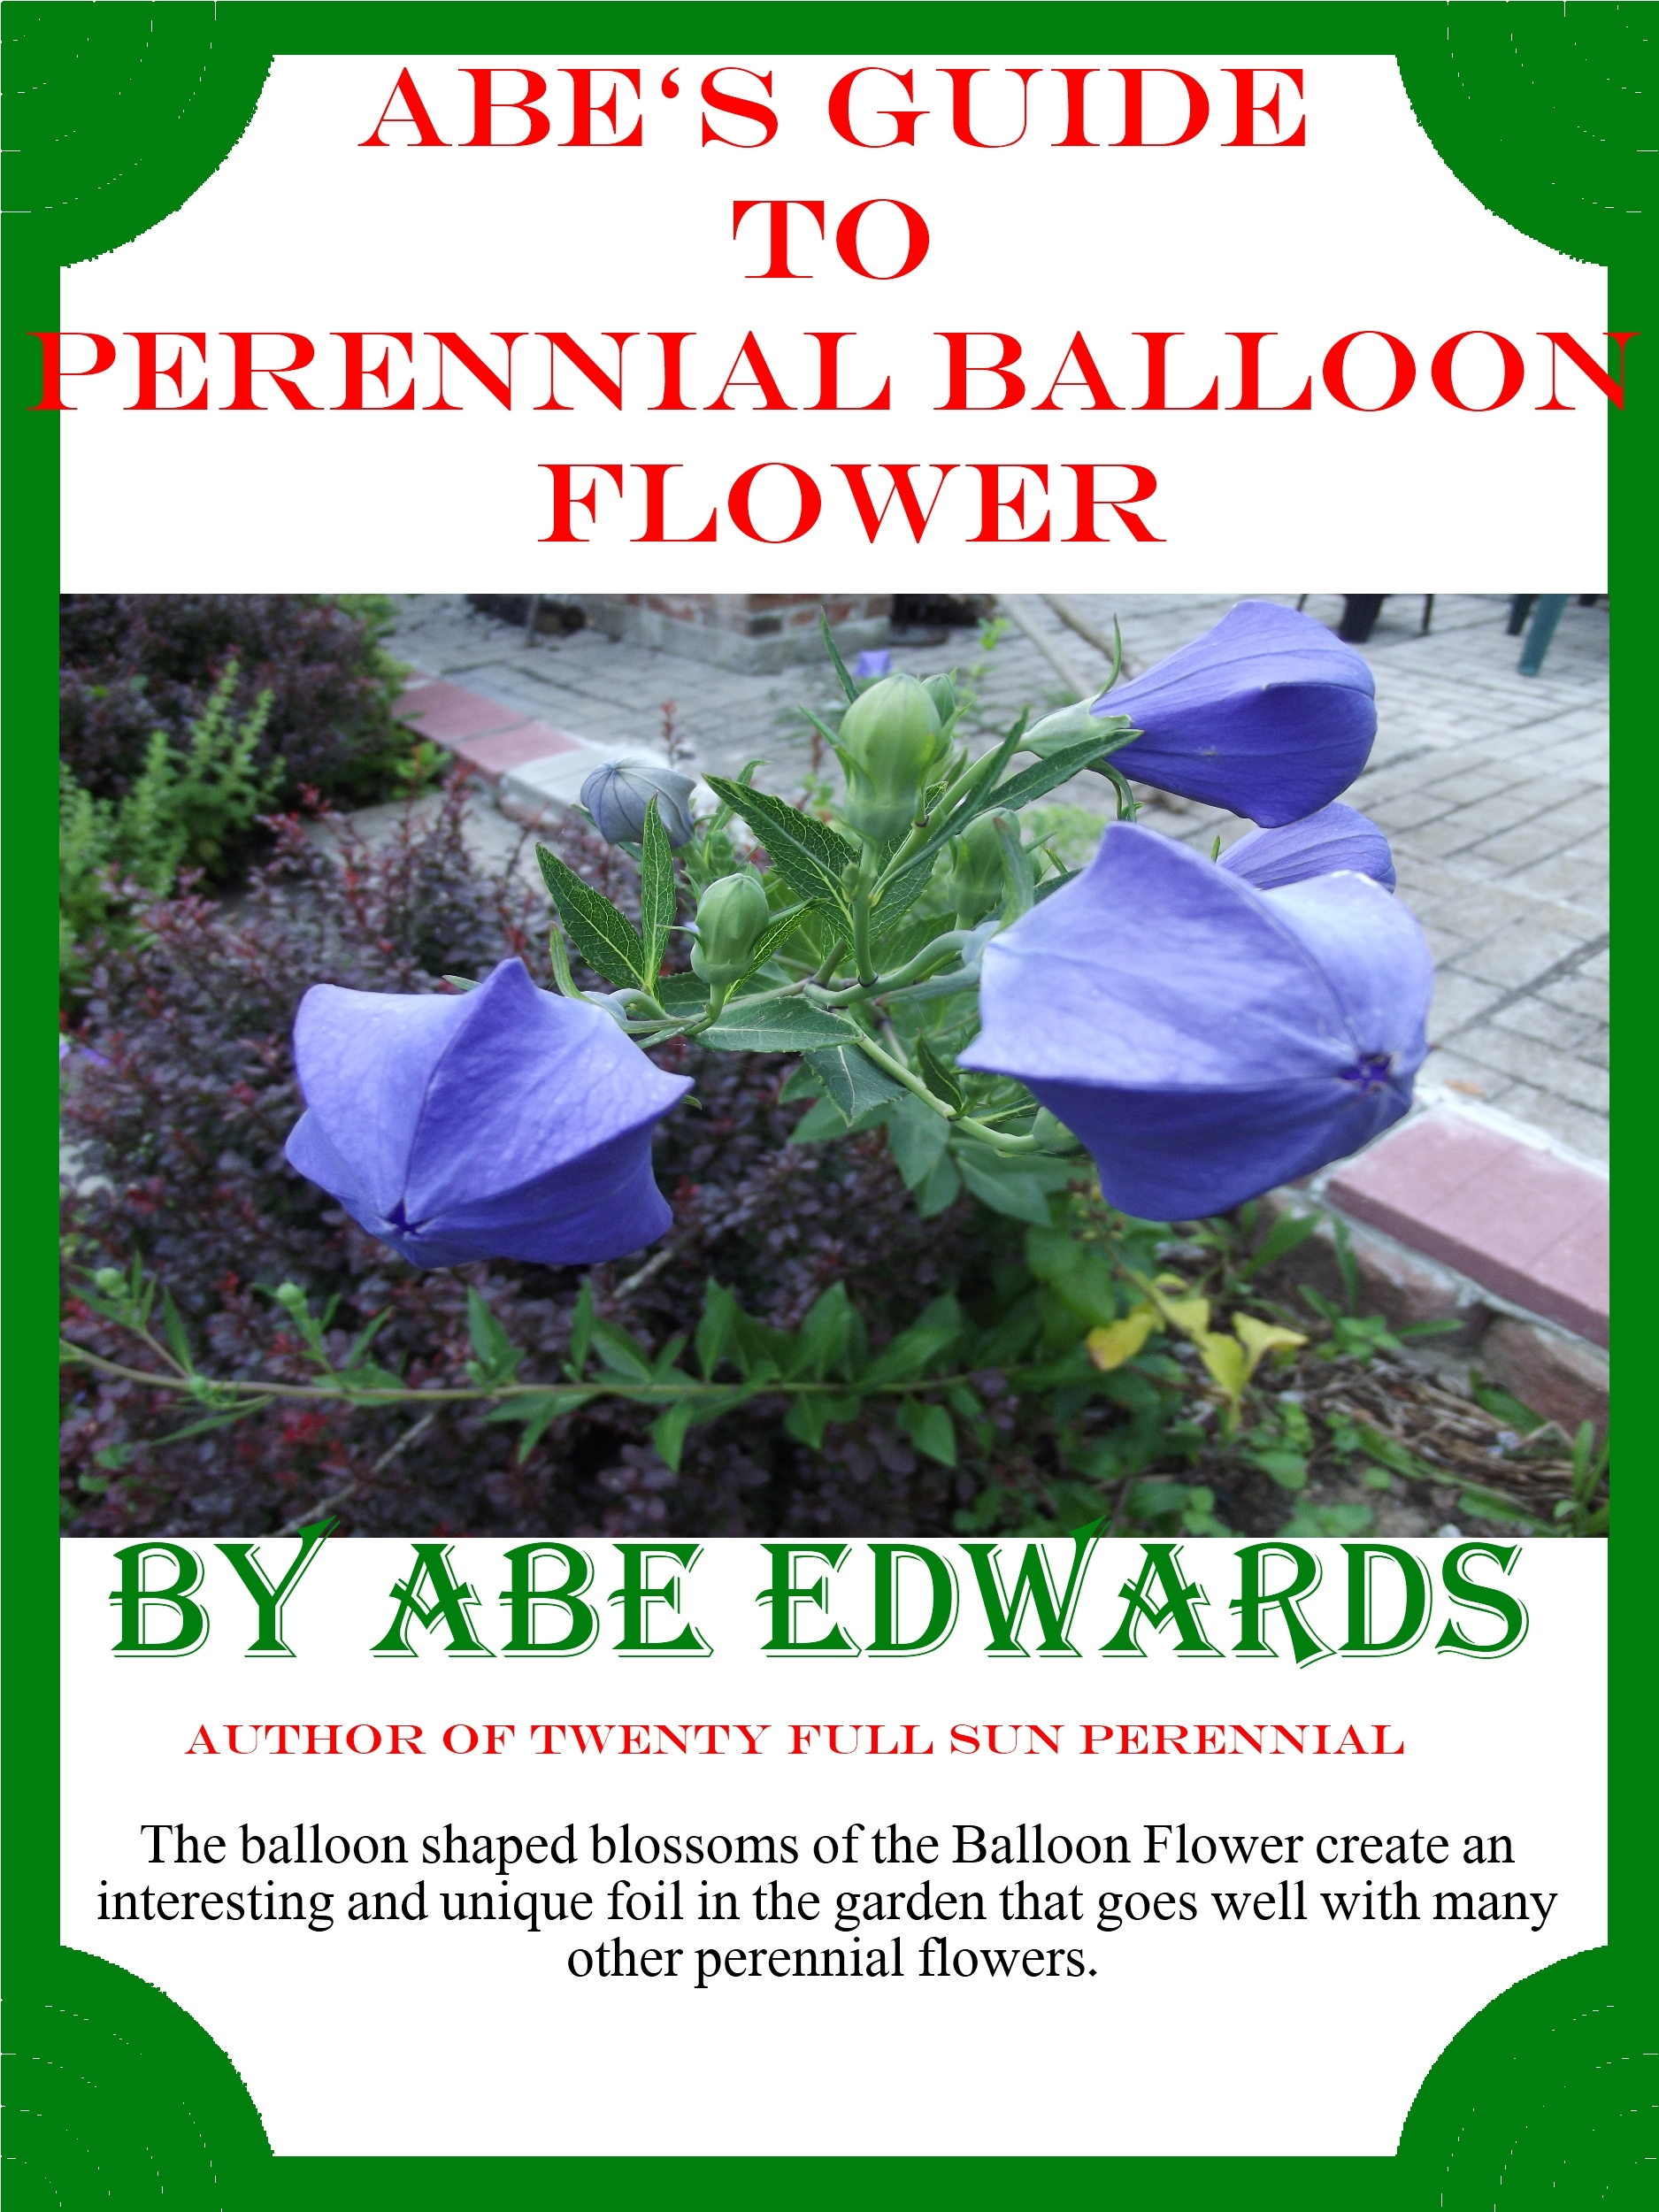 Abe's Guide to Perennial Balloon Flower